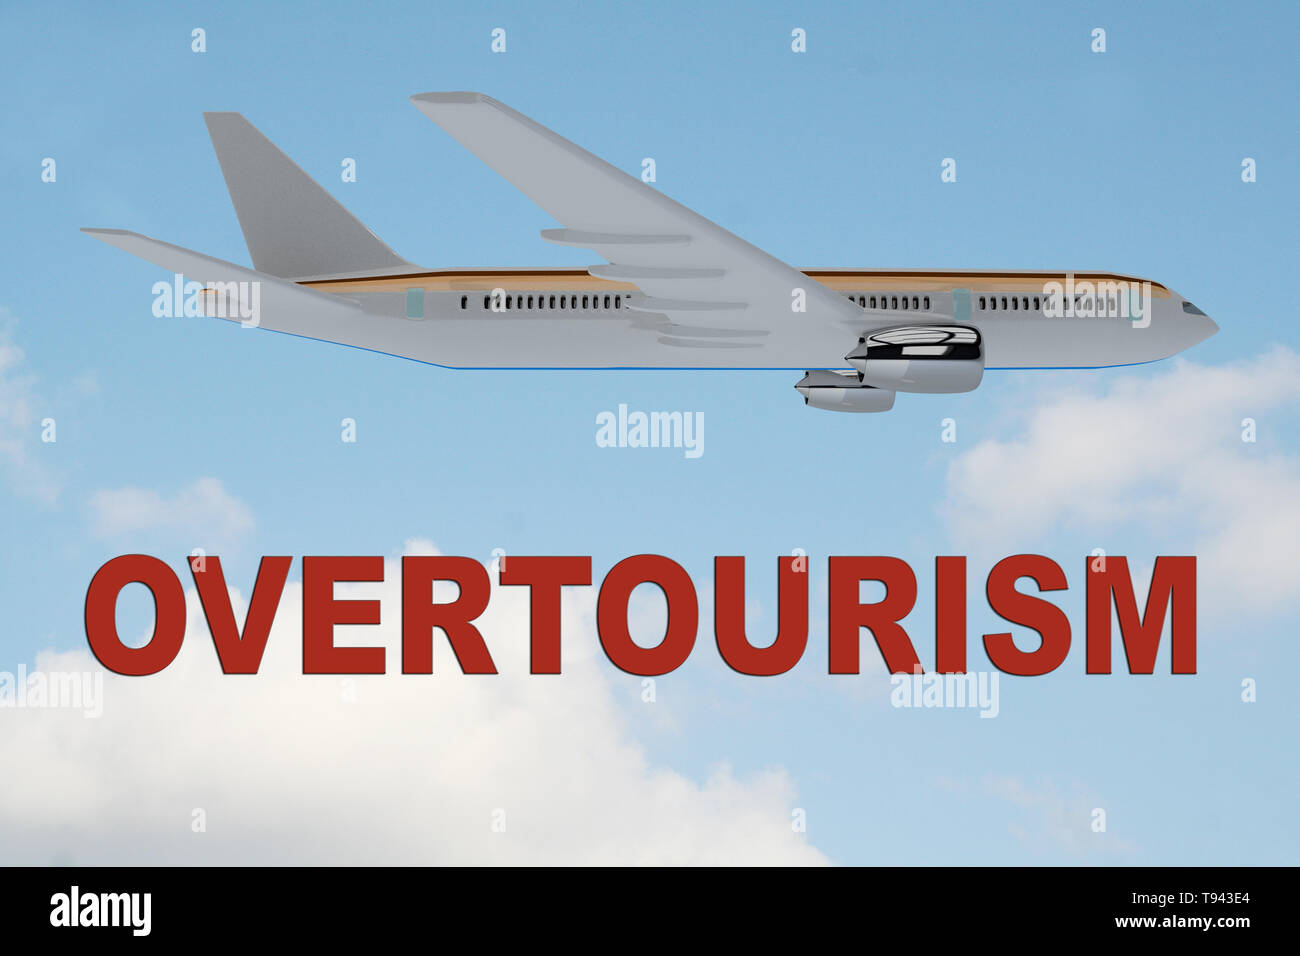 3D illustration of OVERTOURISM title on cloudy sky as a background, under an airplane. - Stock Image